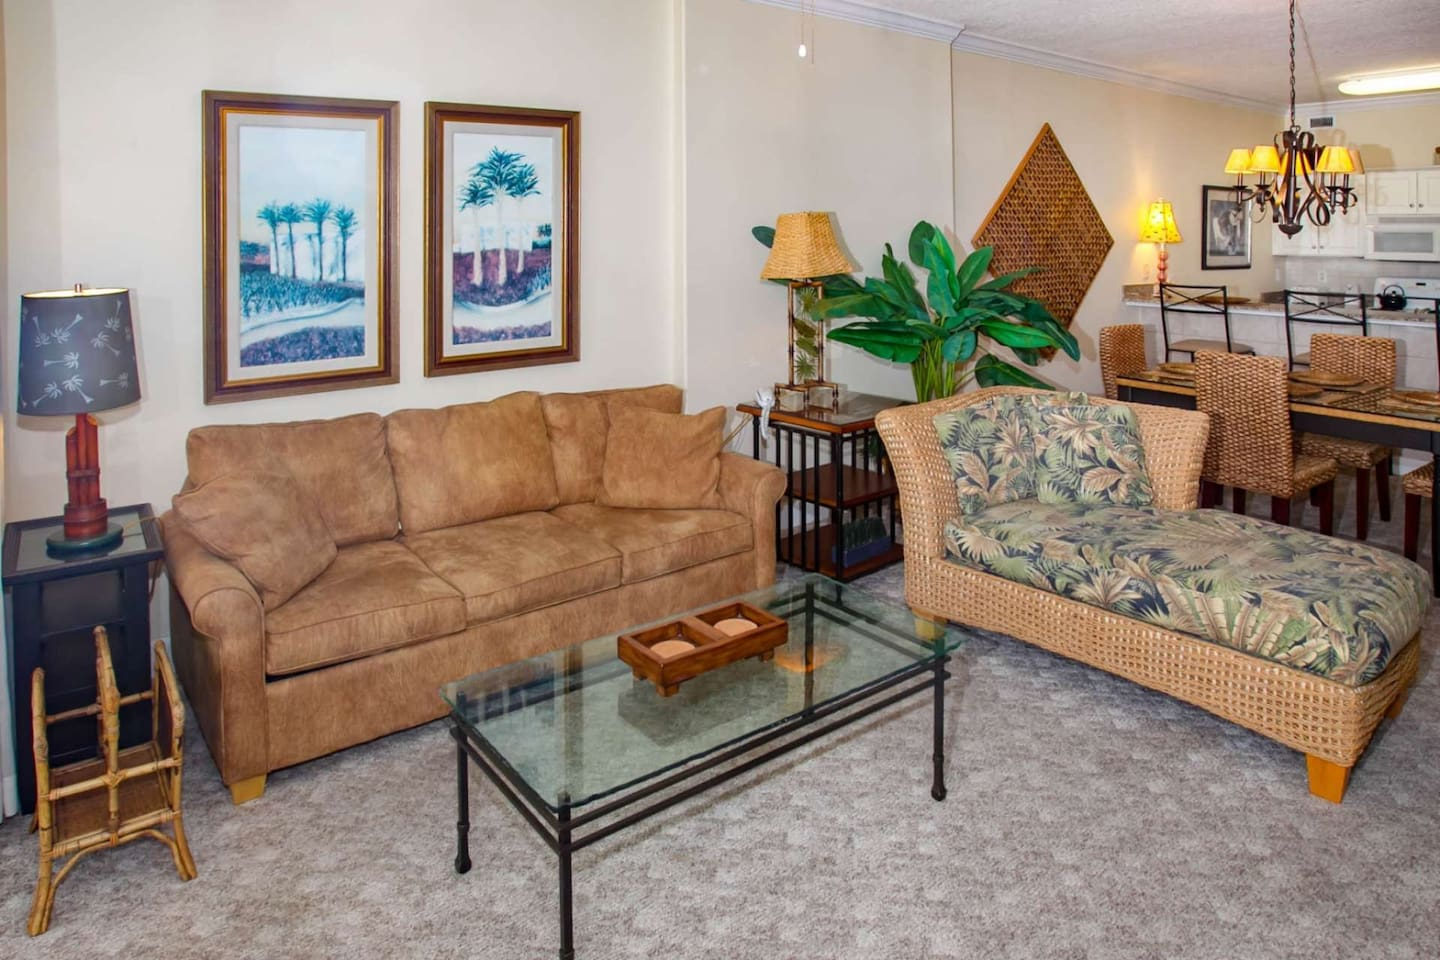 Carpeted living room w/sofa and chaise